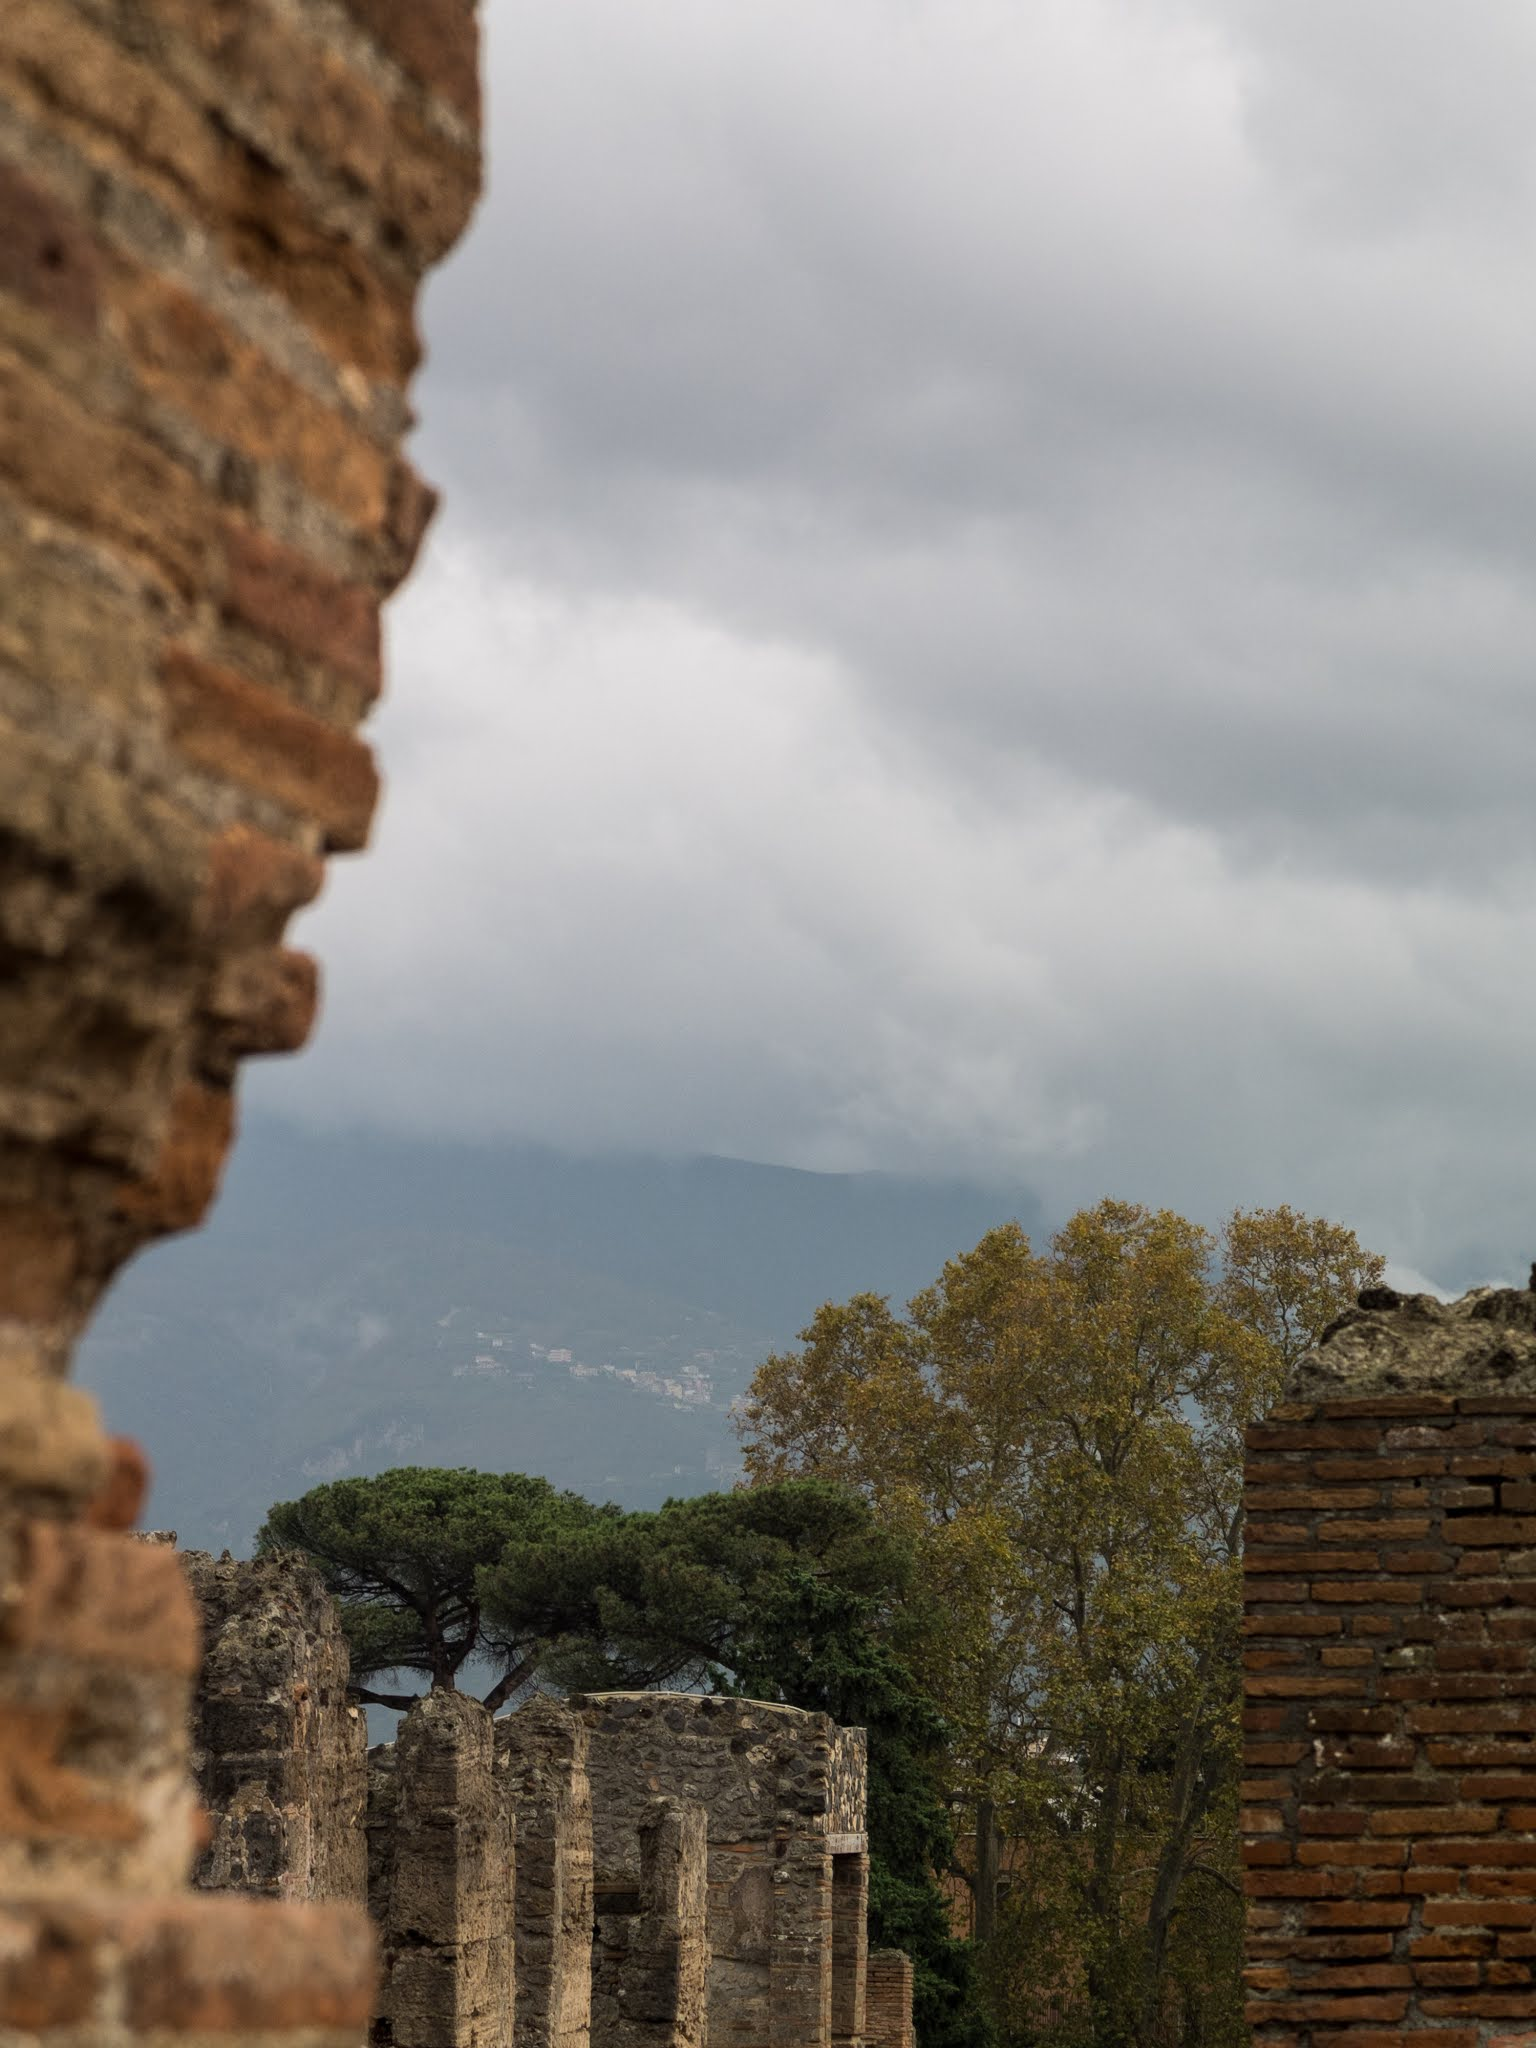 Pompeii in the autumn surrounded with ancient brick walls, evergreens, golden maple trees and Mount Vesuvius.